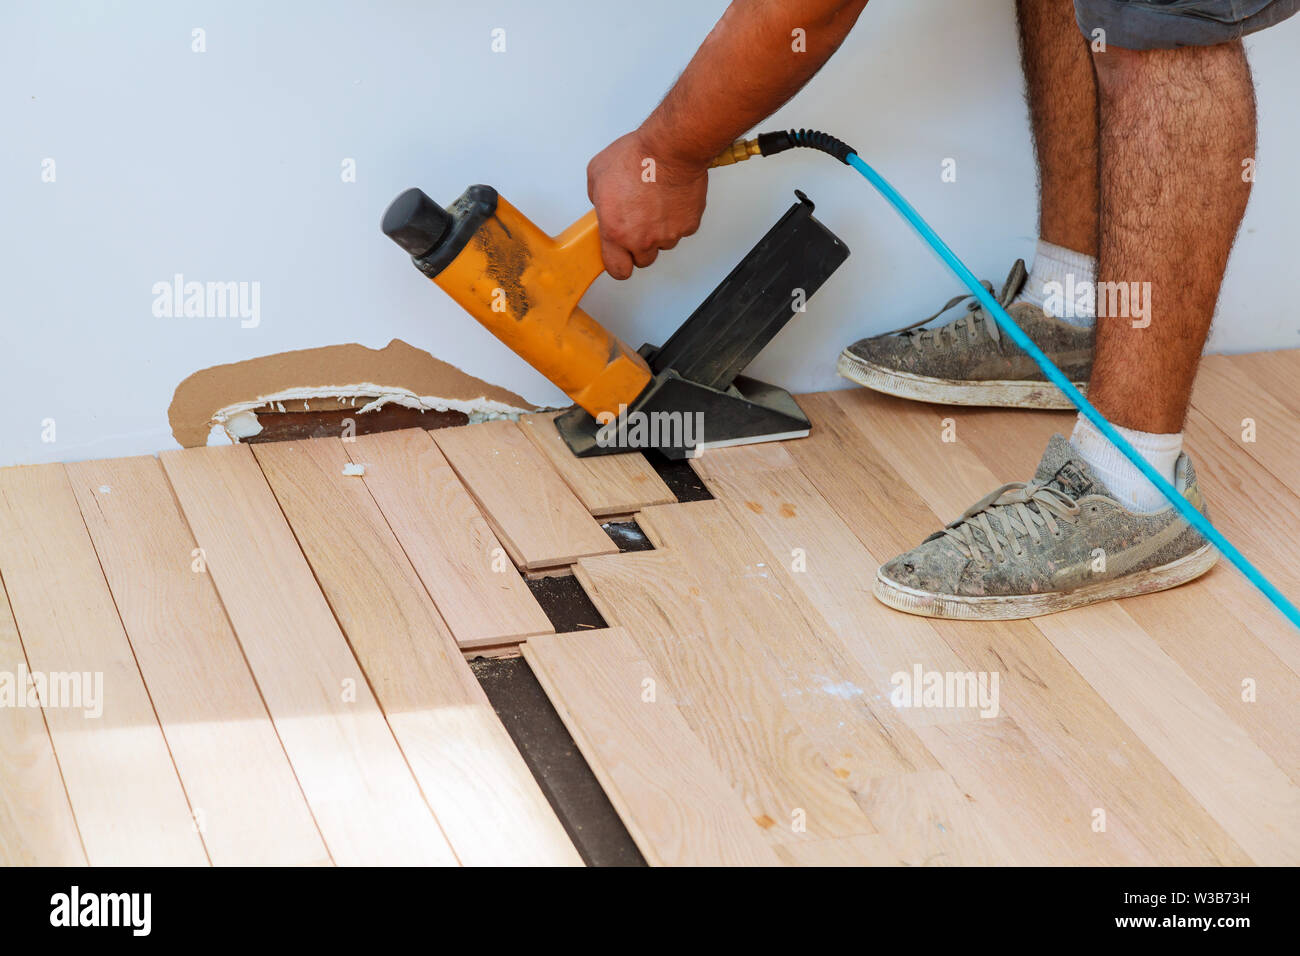 Carpenter worker installing wood parquet board during flooring work with hammer - Stock Image